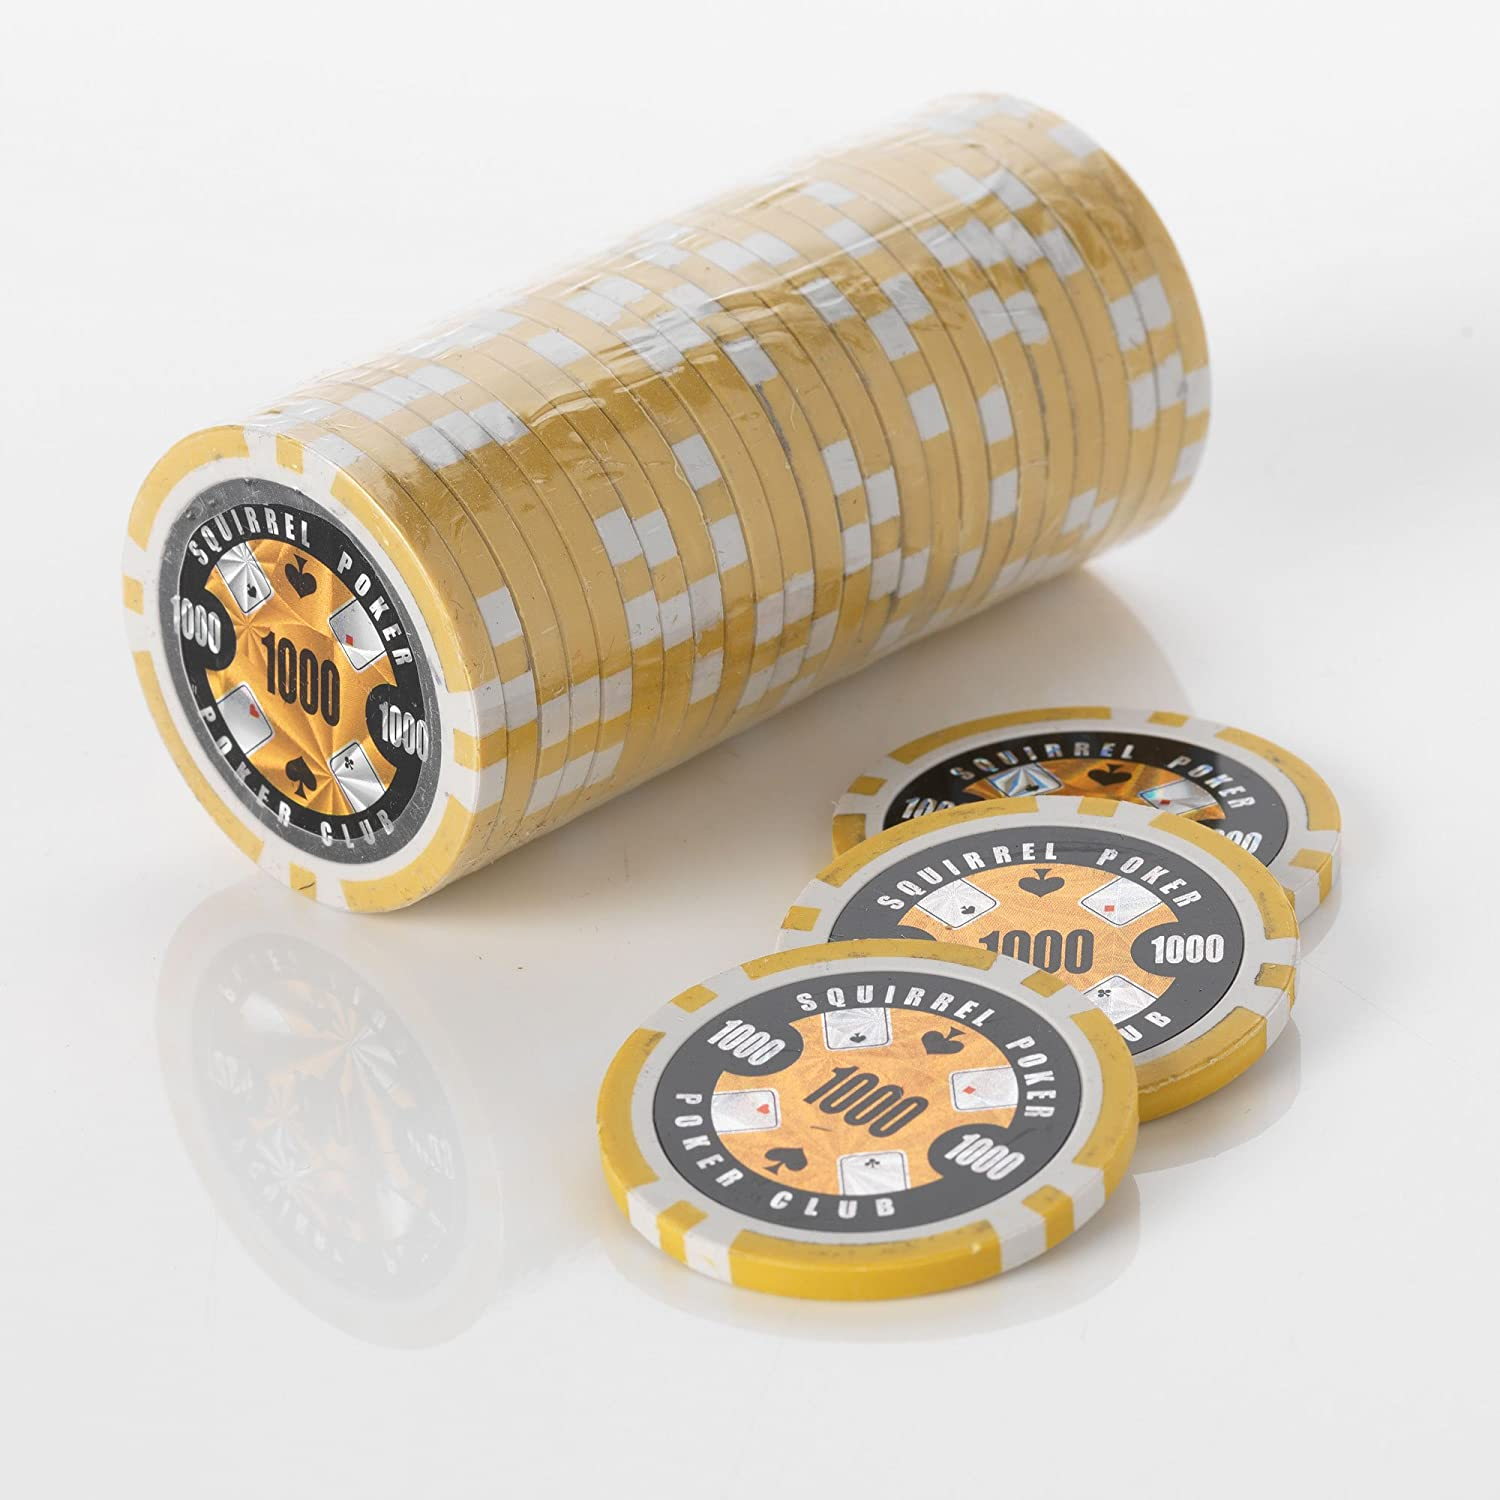 15G Poker Chips - Design - Squirrel Poker Poker Club 15G Poker Chips Colour = Yellow, Value = $1000 by Squirrel Poker SPPCCHIPSYellow-$1000